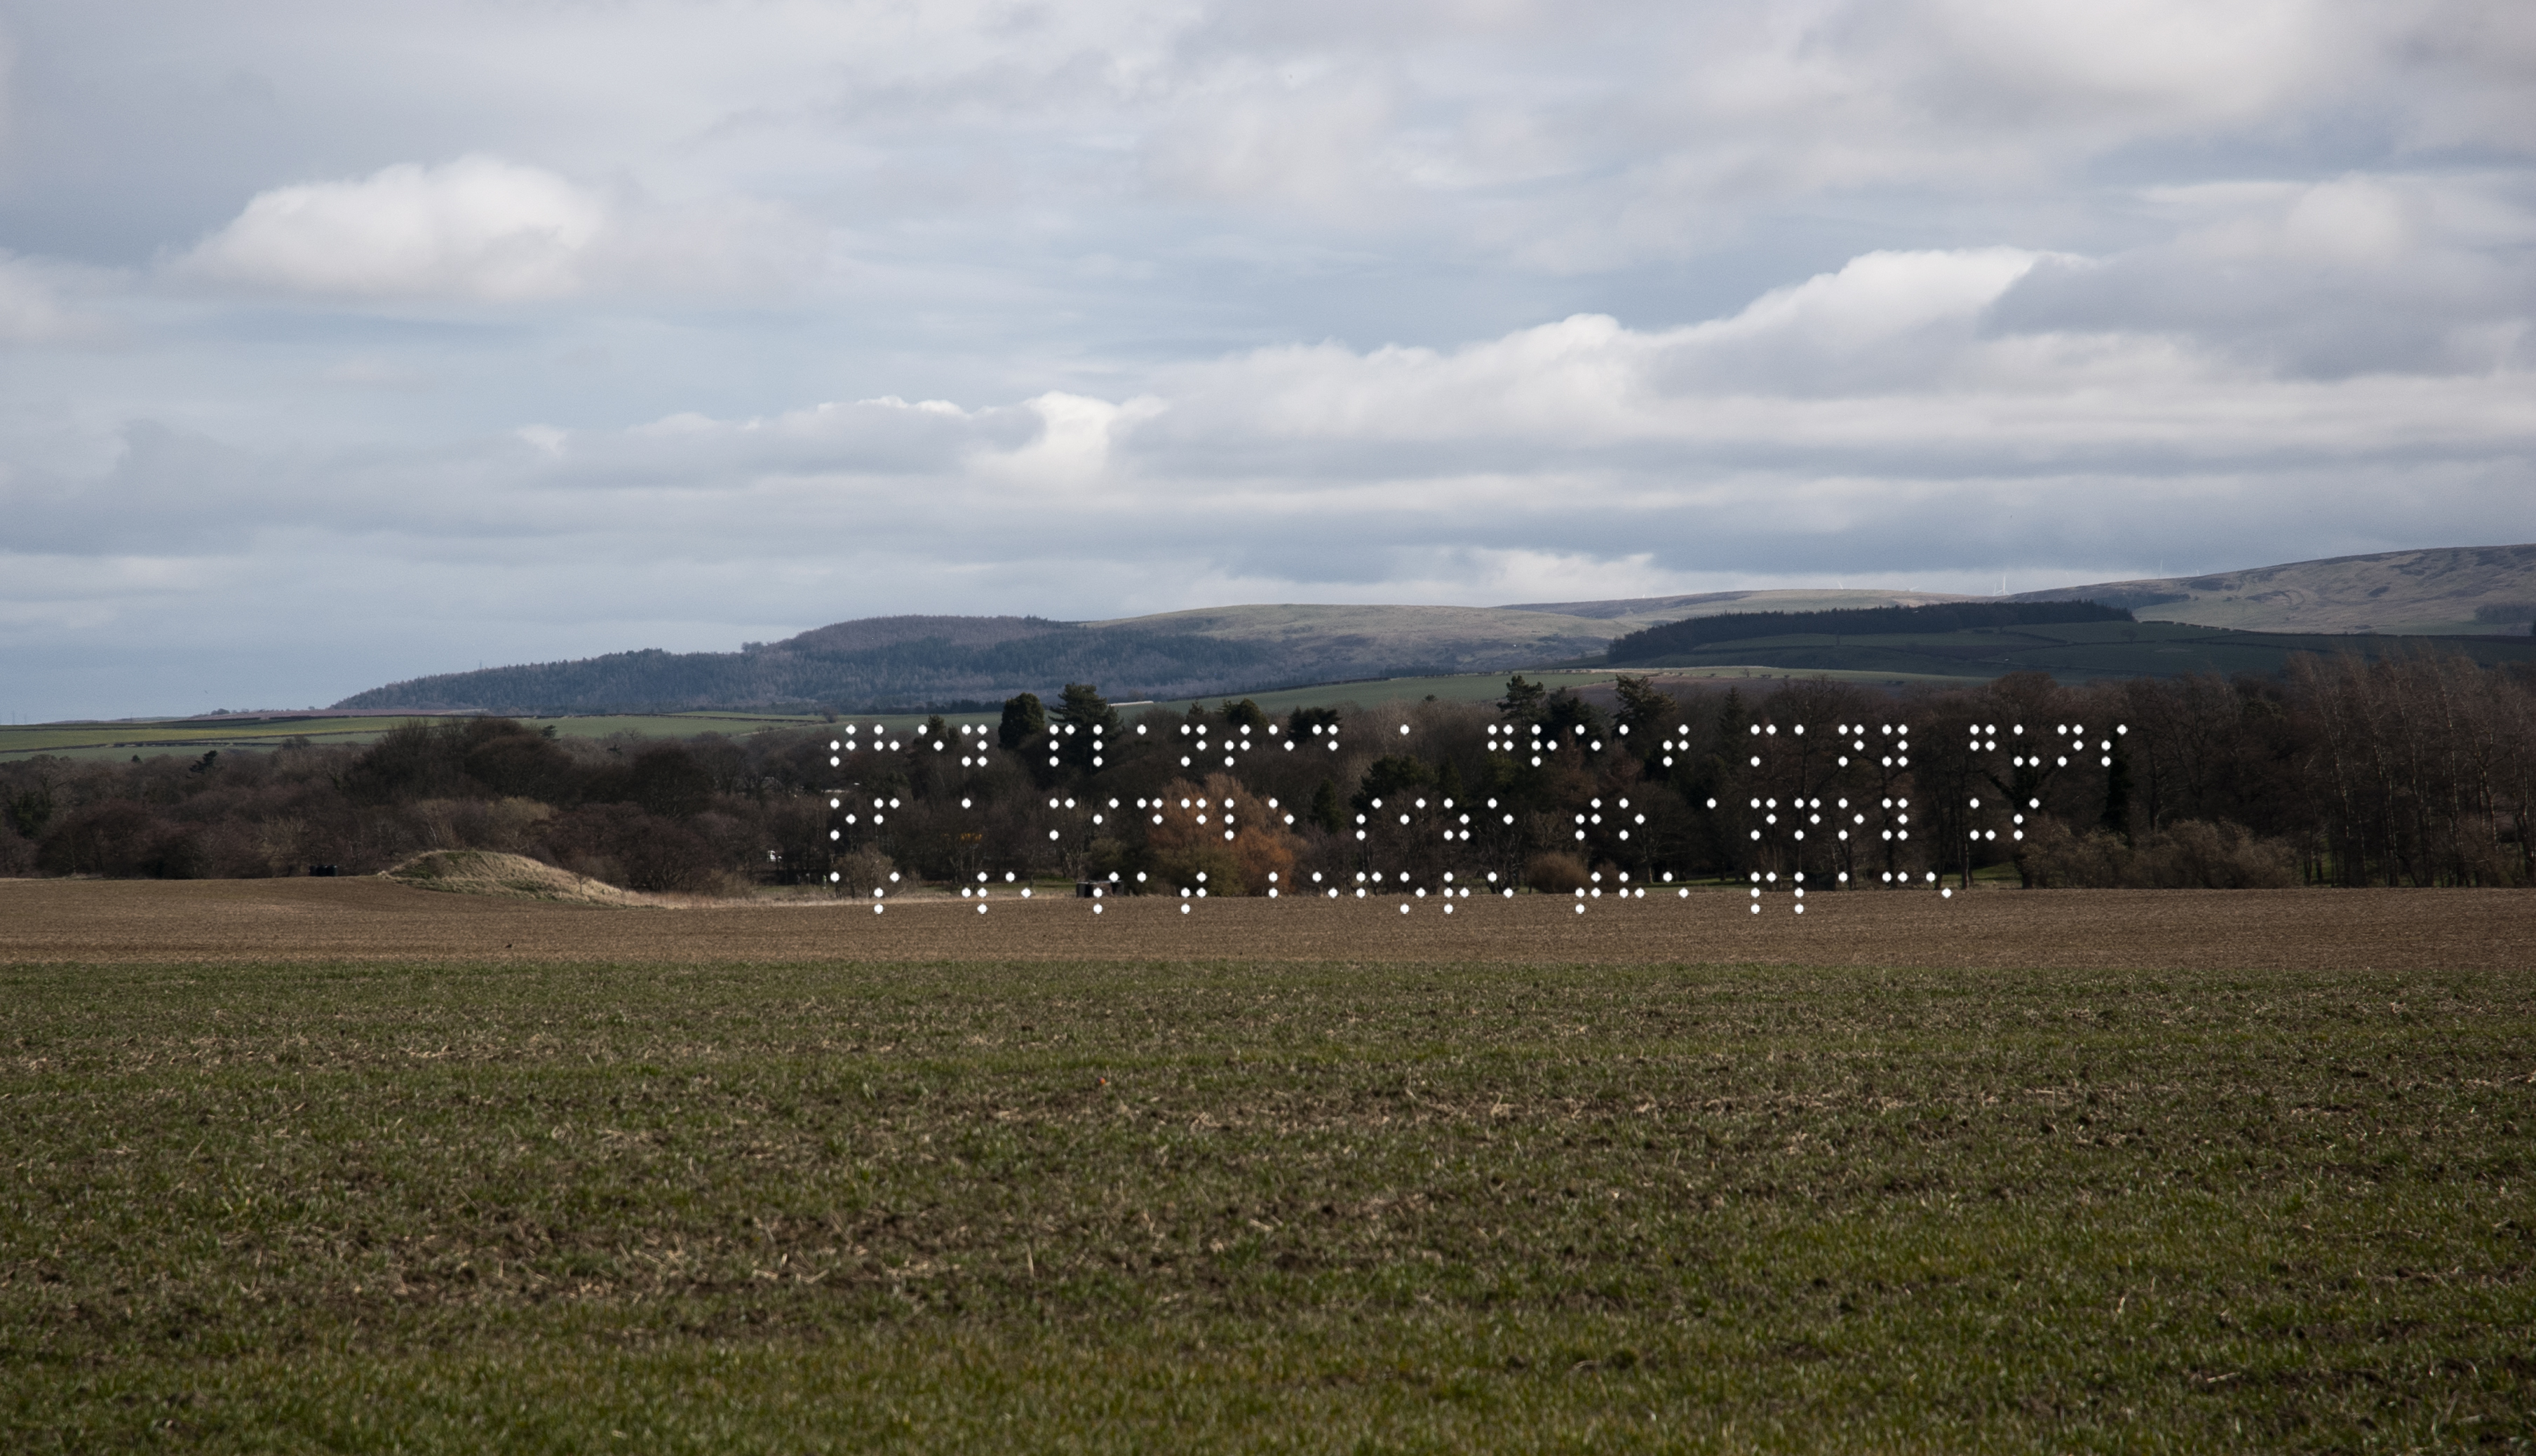 Farmed field with mound of earth. Mound was cannon platfrom. Quote taken from historical figure shown in Braille